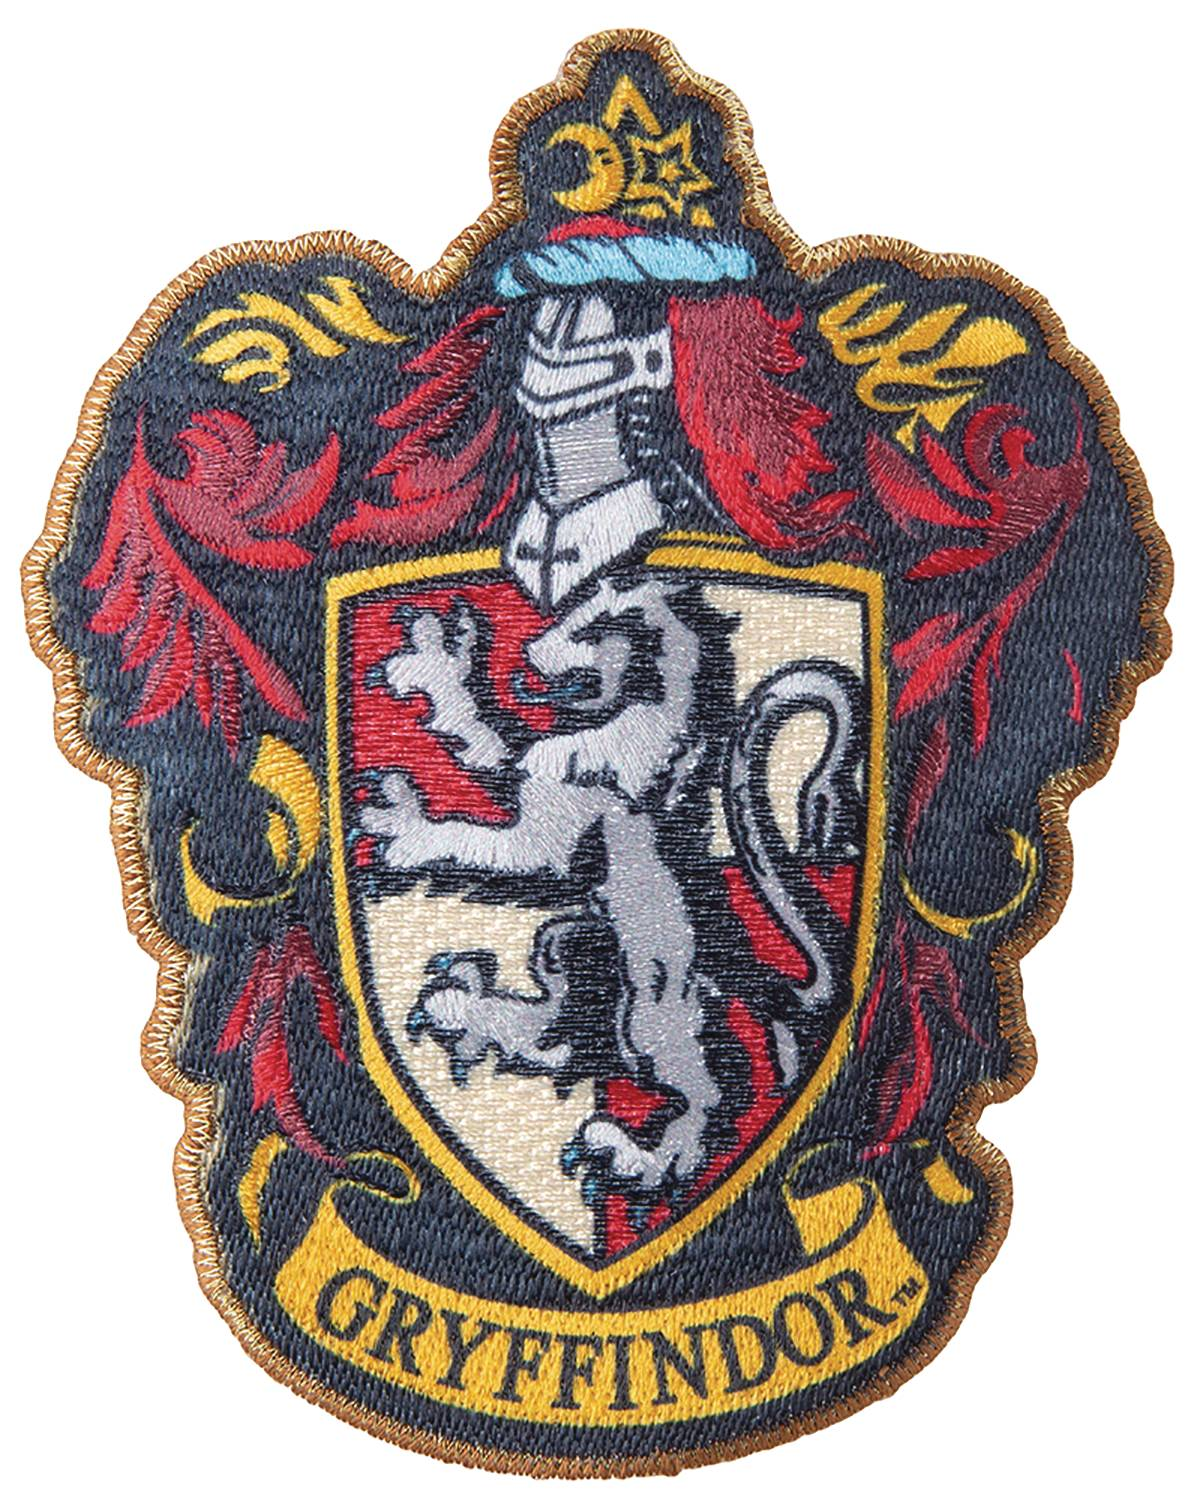 HARRY POTTER GRYFFINDOR PATCH.jpg